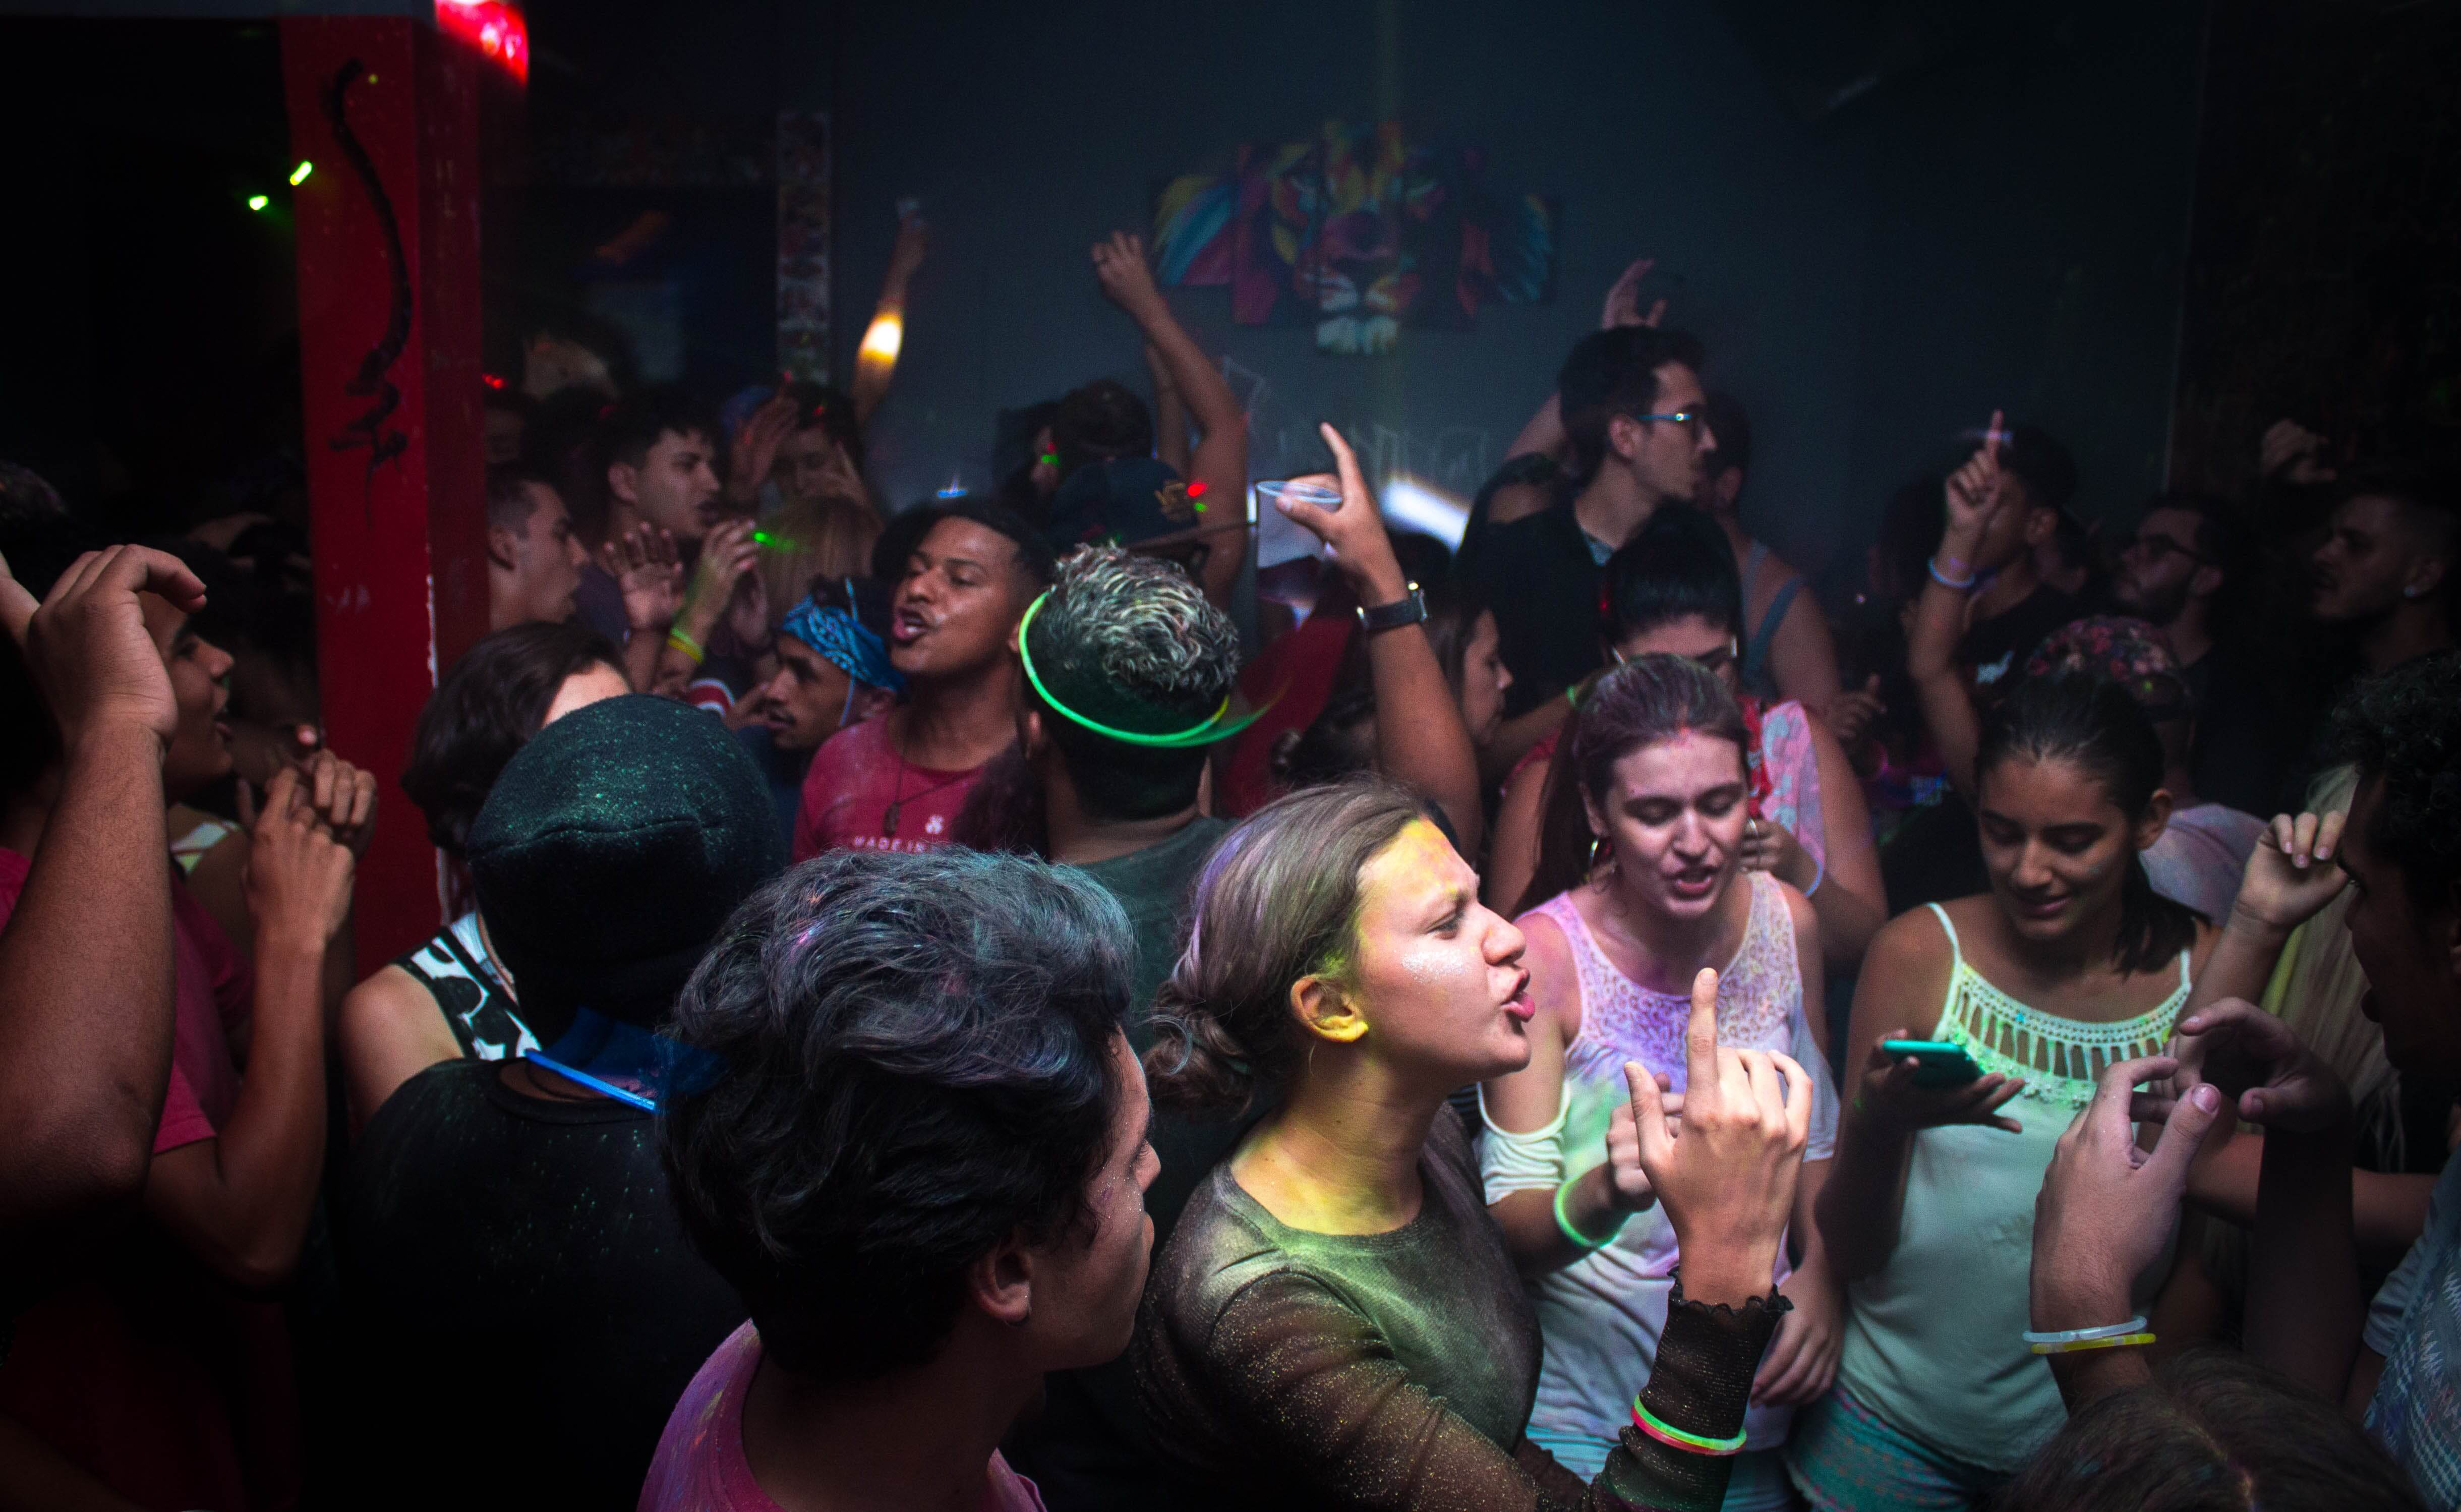 Crowd in a club partying